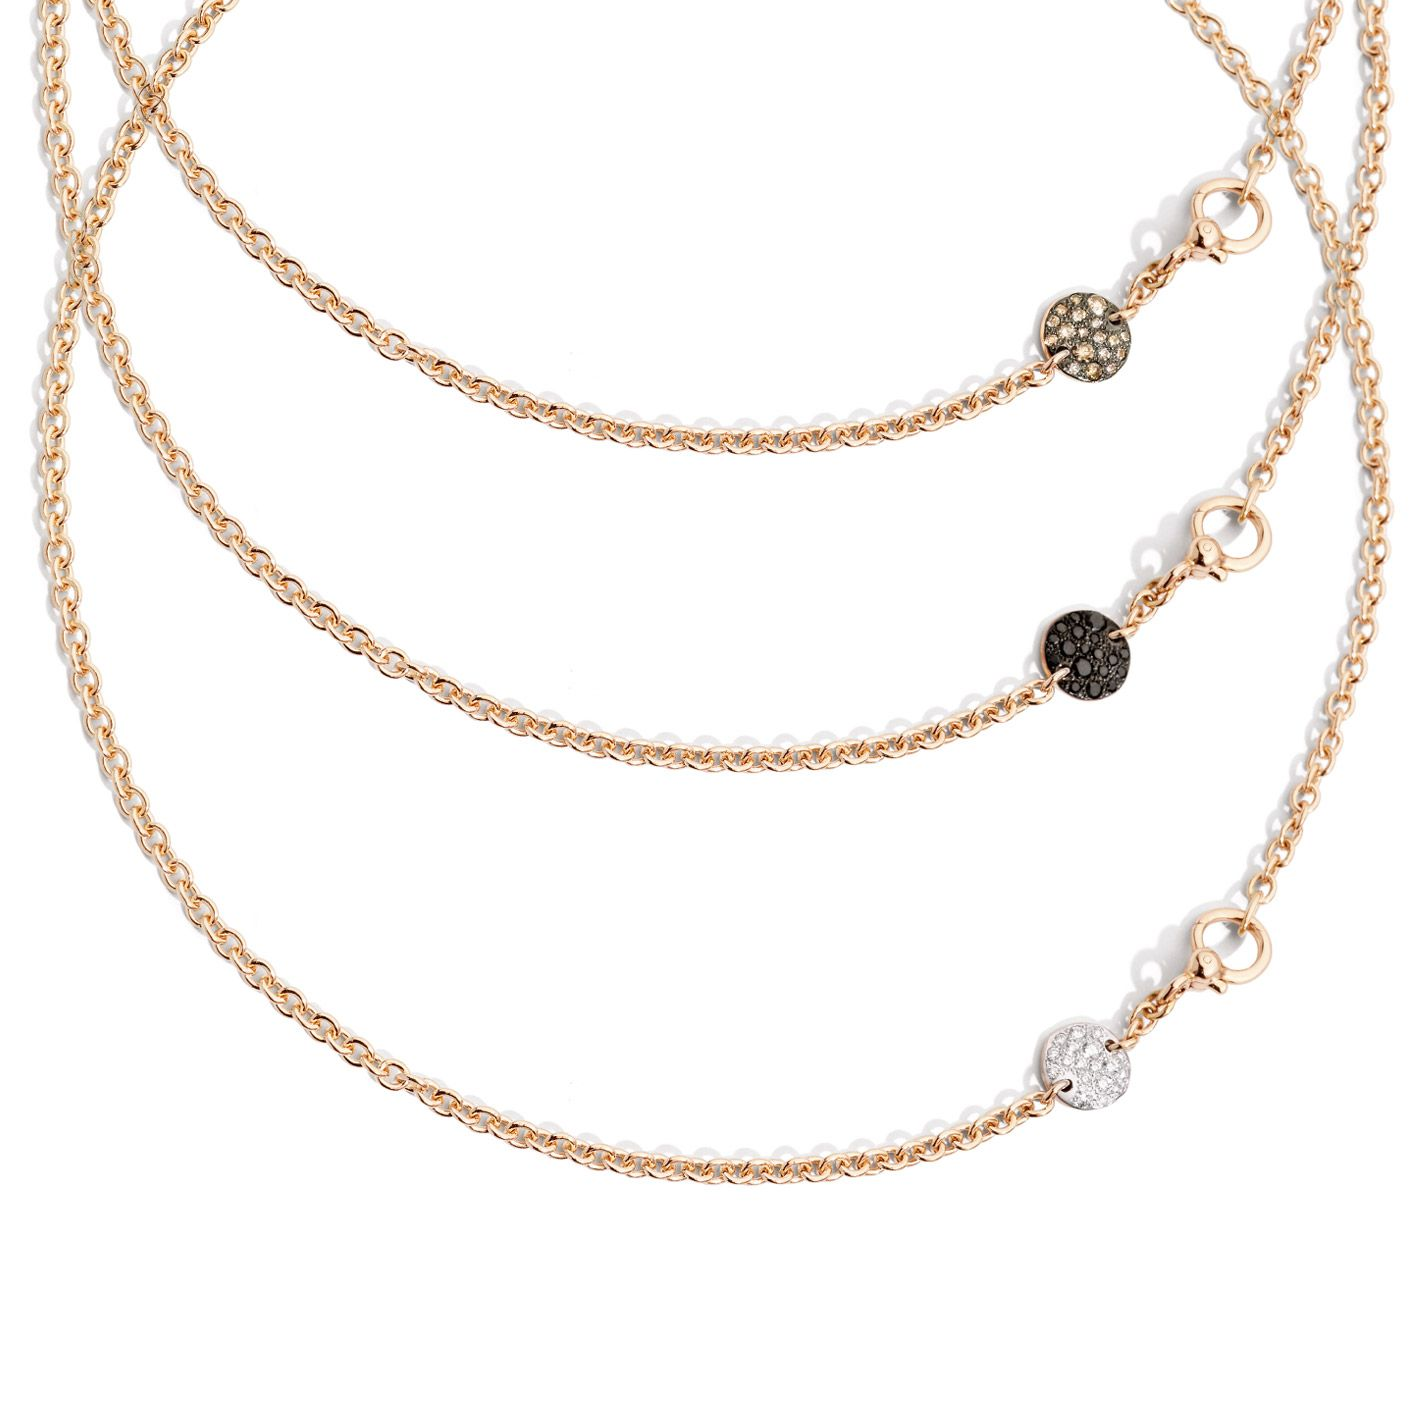 Sabbia Collection Necklace in Rose gold with black diamonds